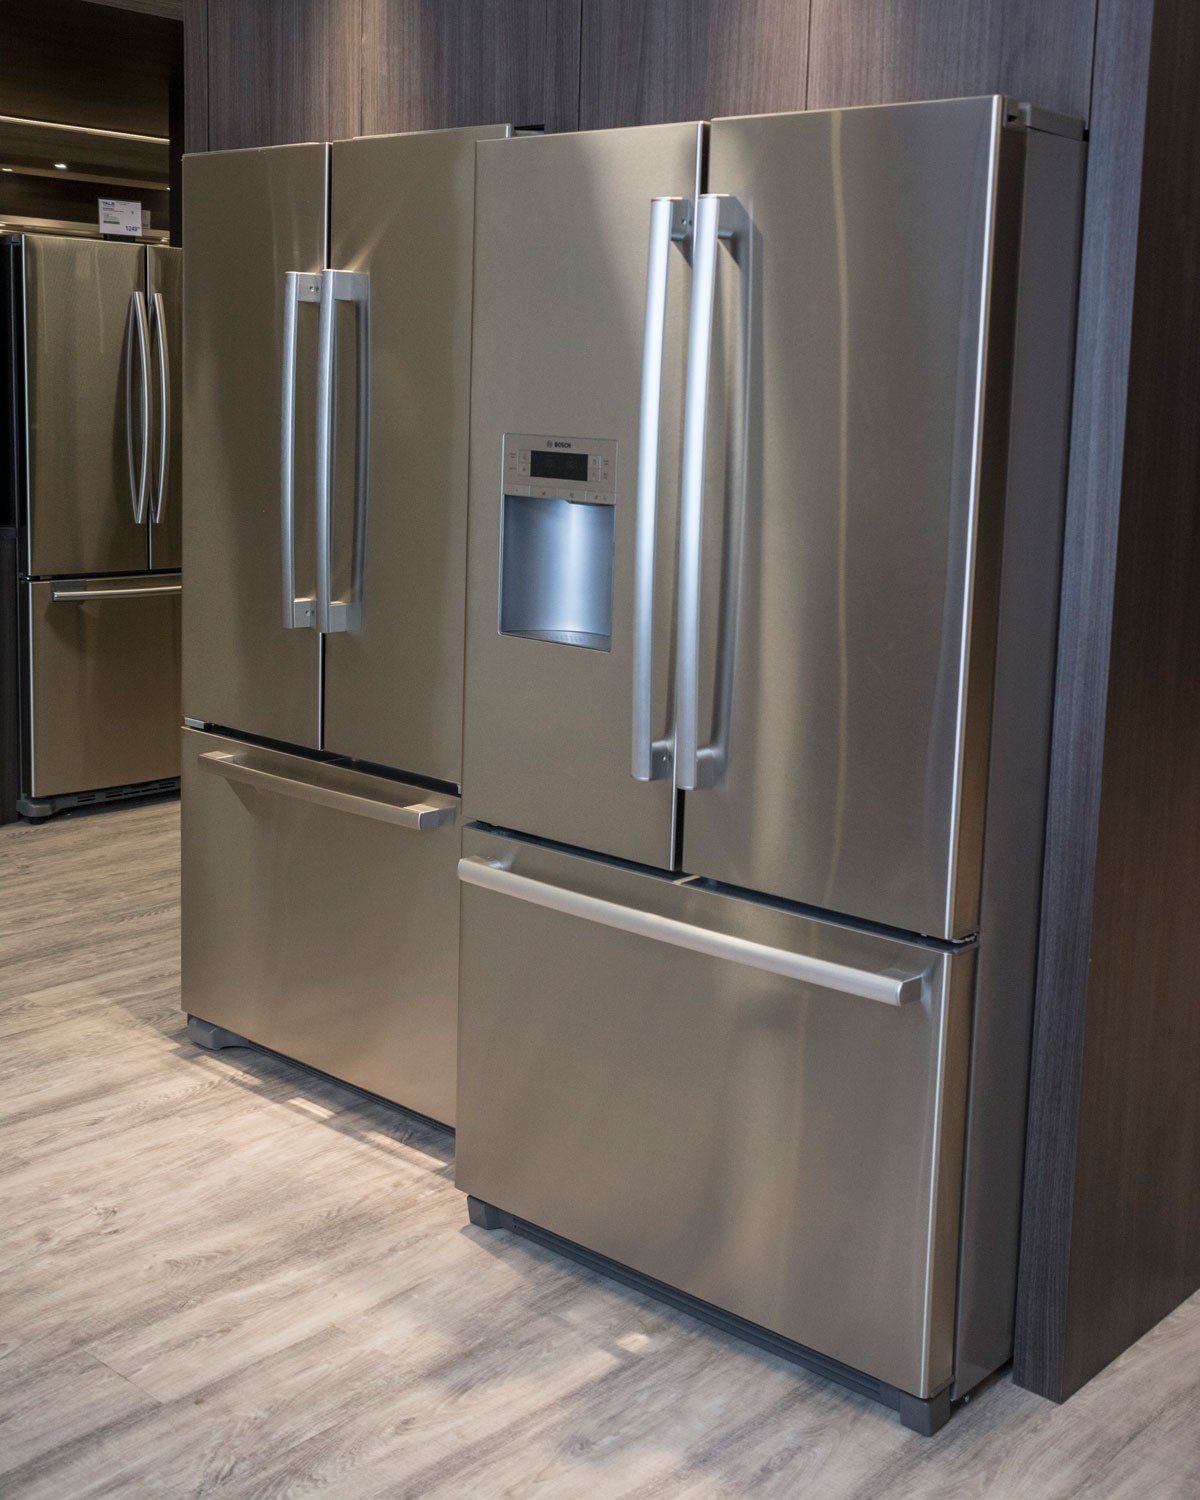 the 7 best counter depth refrigerators for 2019 (reviews ratingsregular depth vs counter depth refrigerator